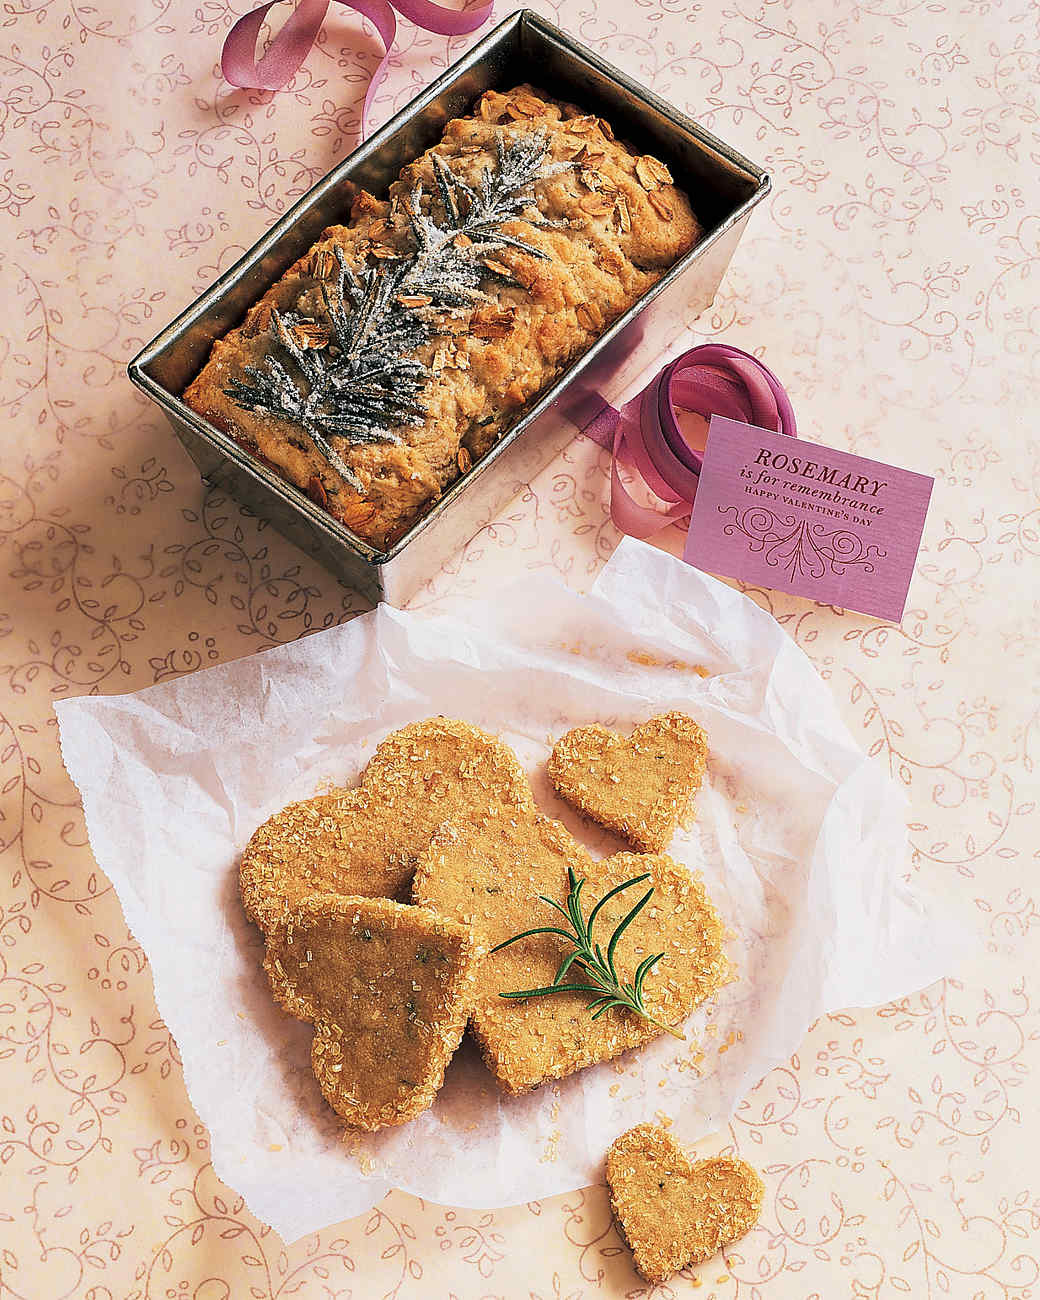 Rosemary-Walnut Shortbread Cookies